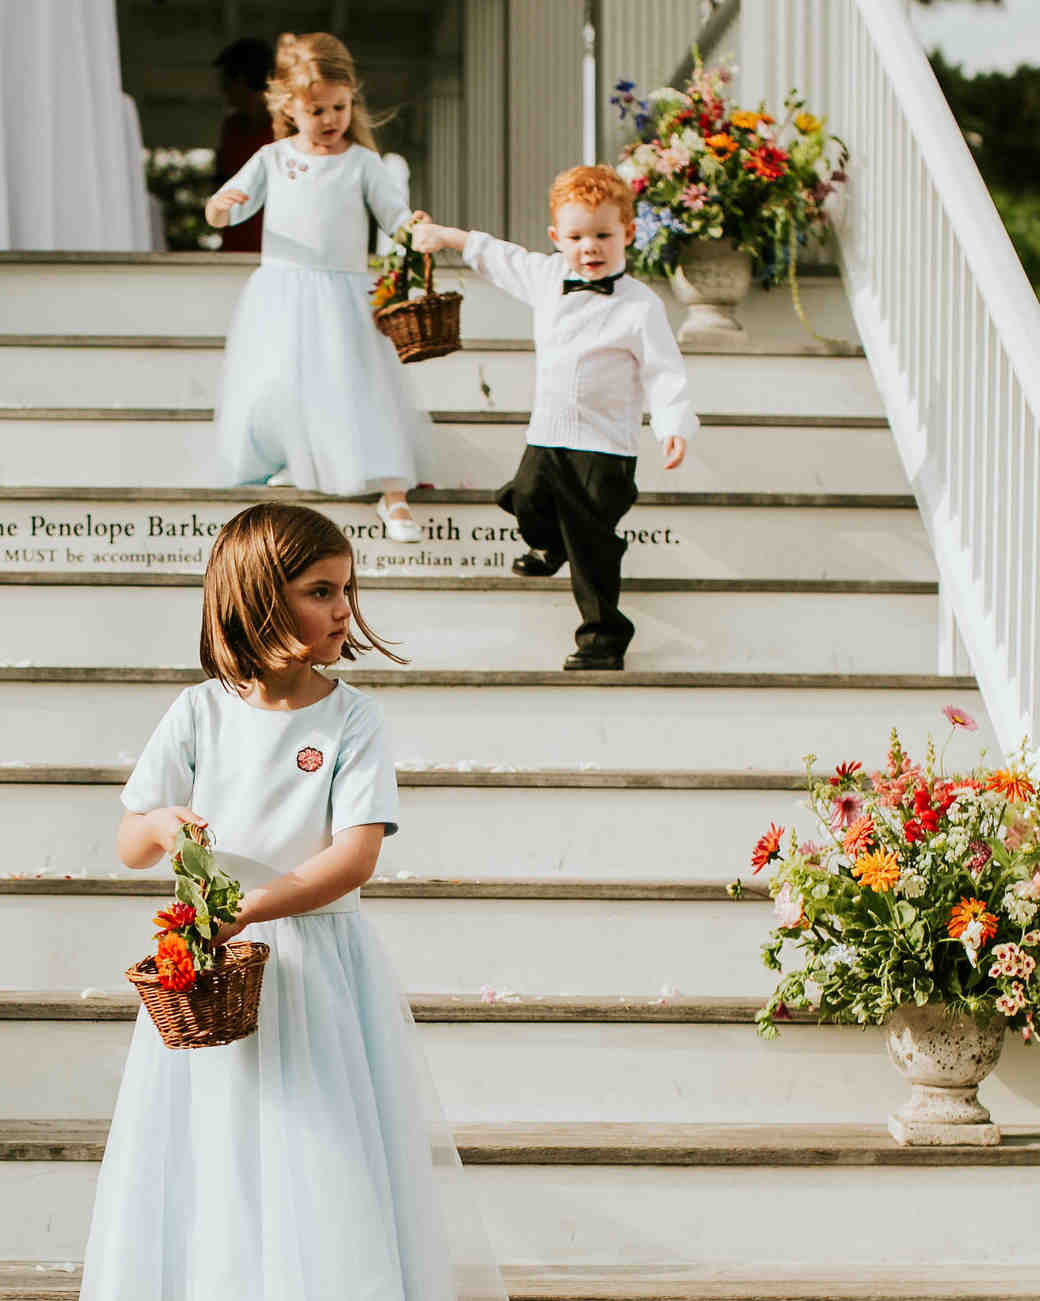 leah michael wedding flower girls ring bearer on stairs